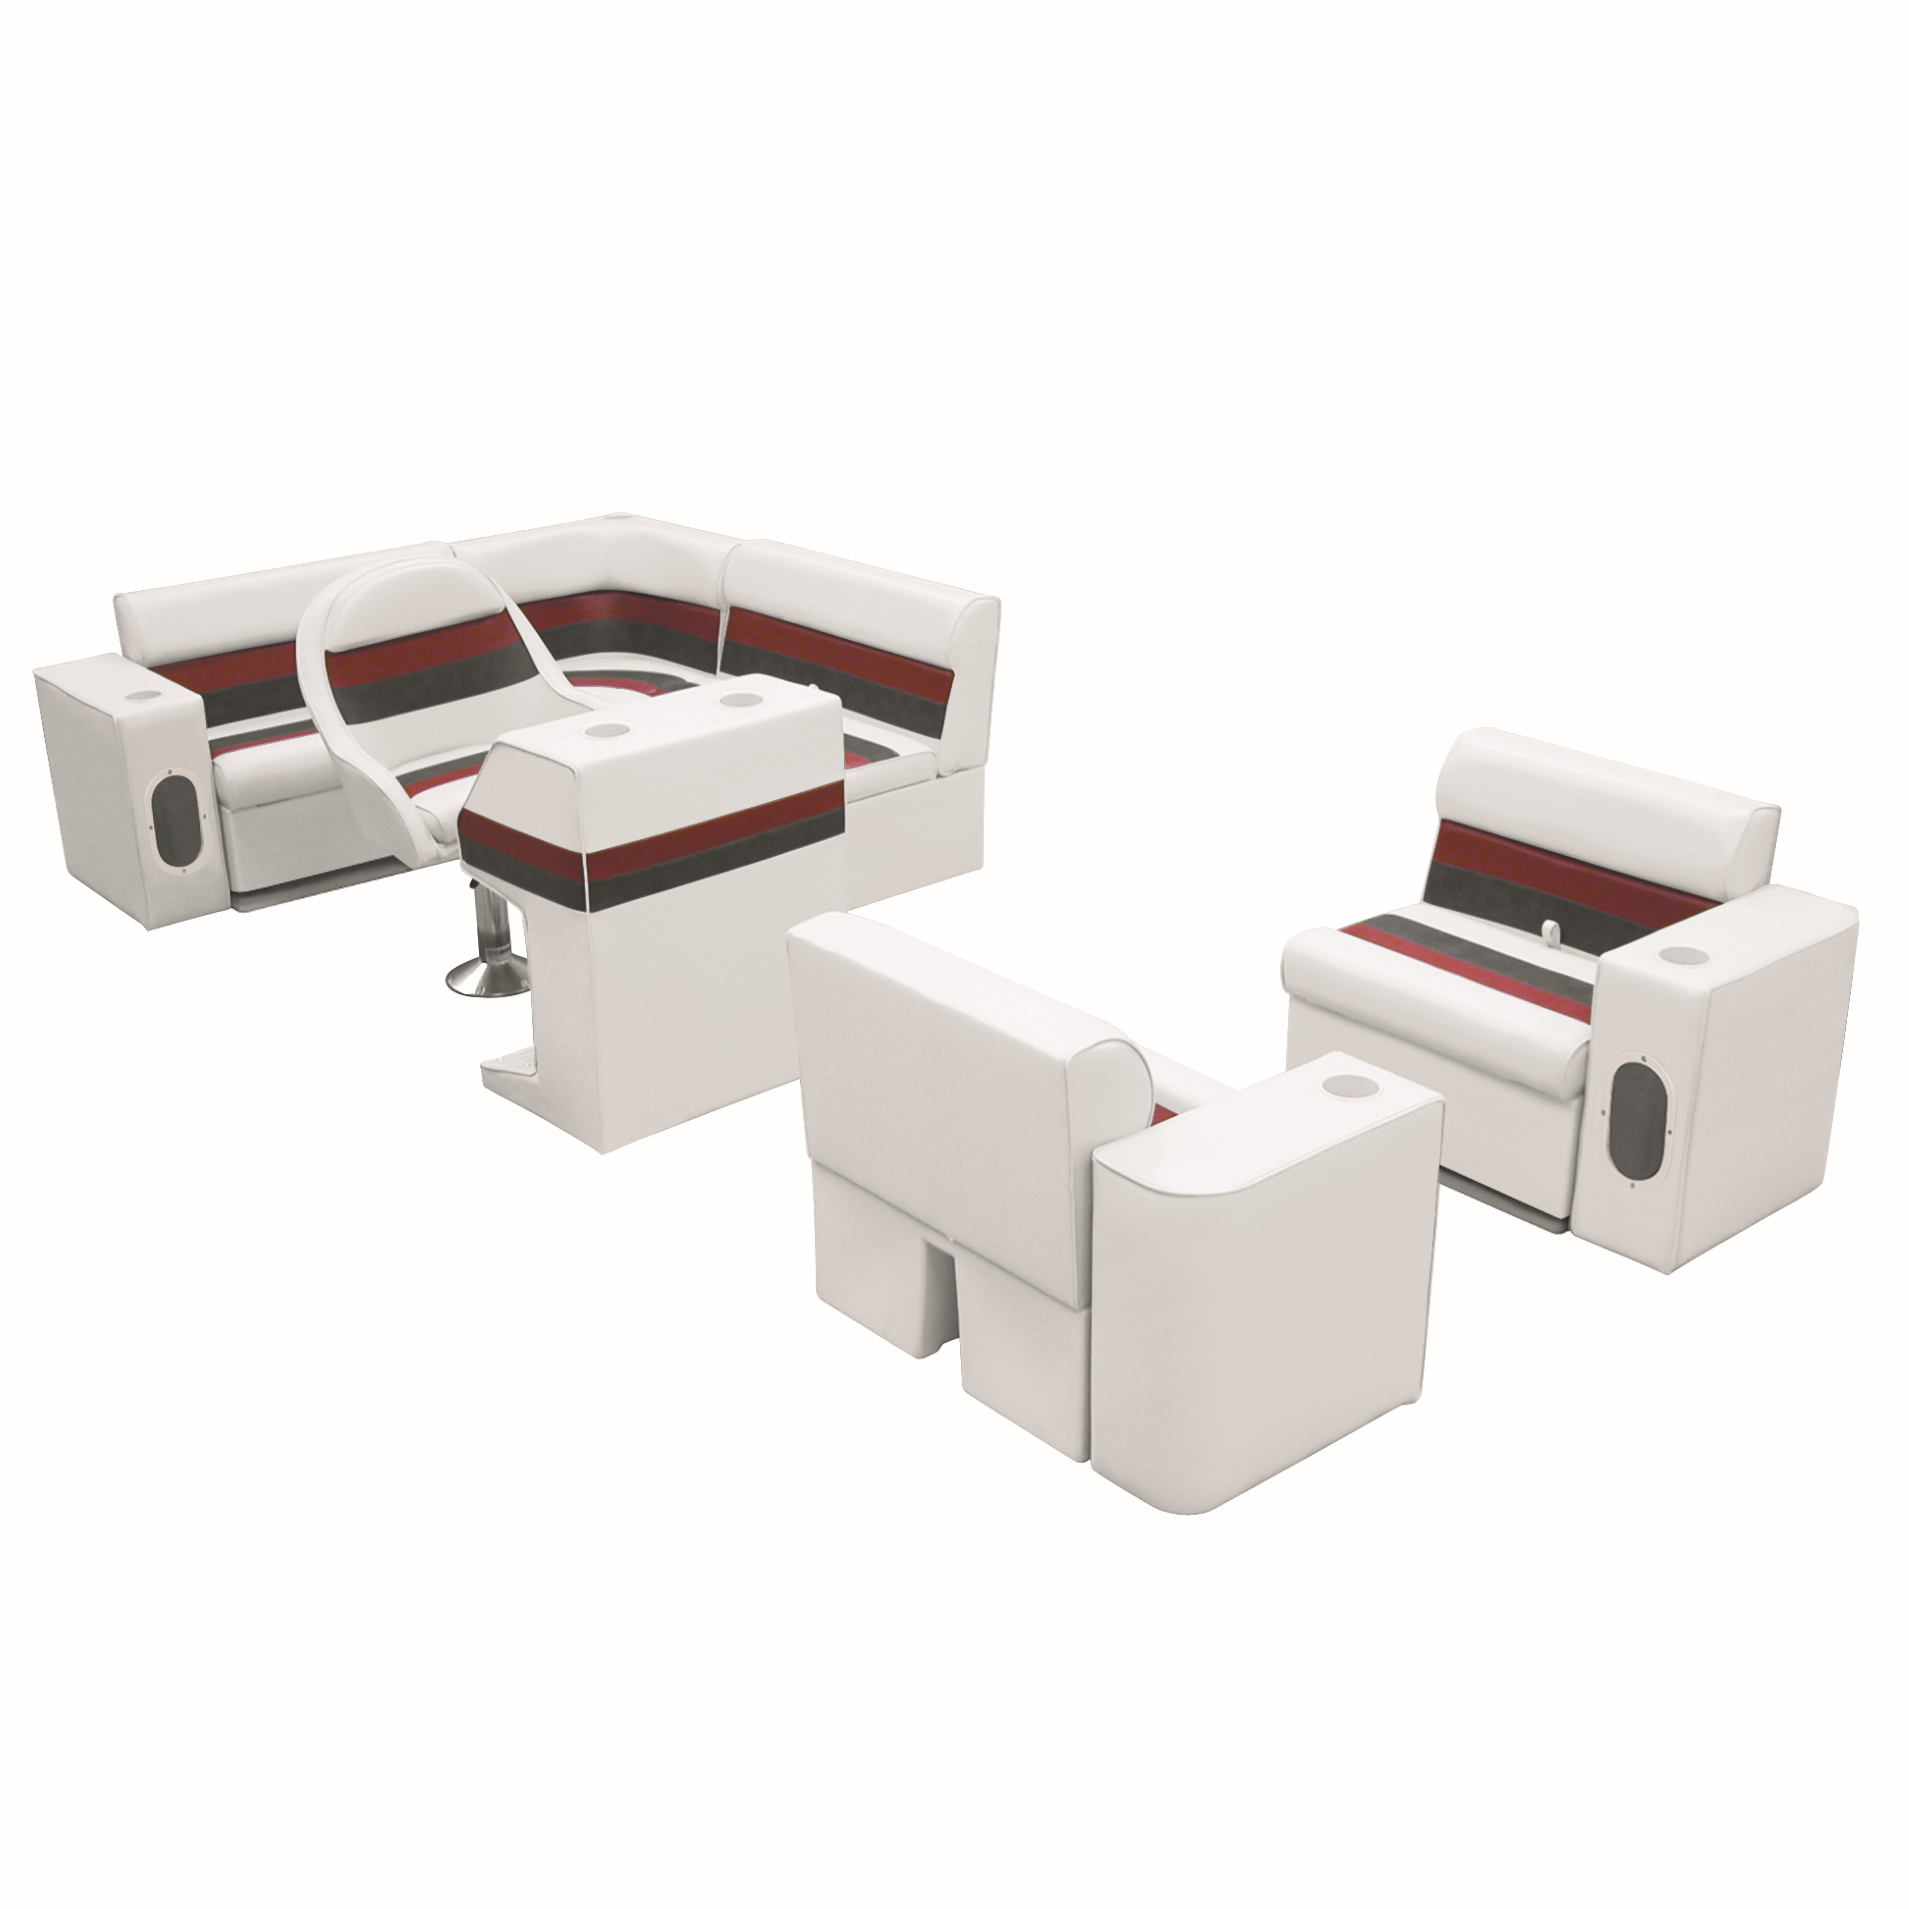 Deluxe Pontoon Seats w/Toe Kick Base, Group 6 Package Plus Stand, White/Red/Char